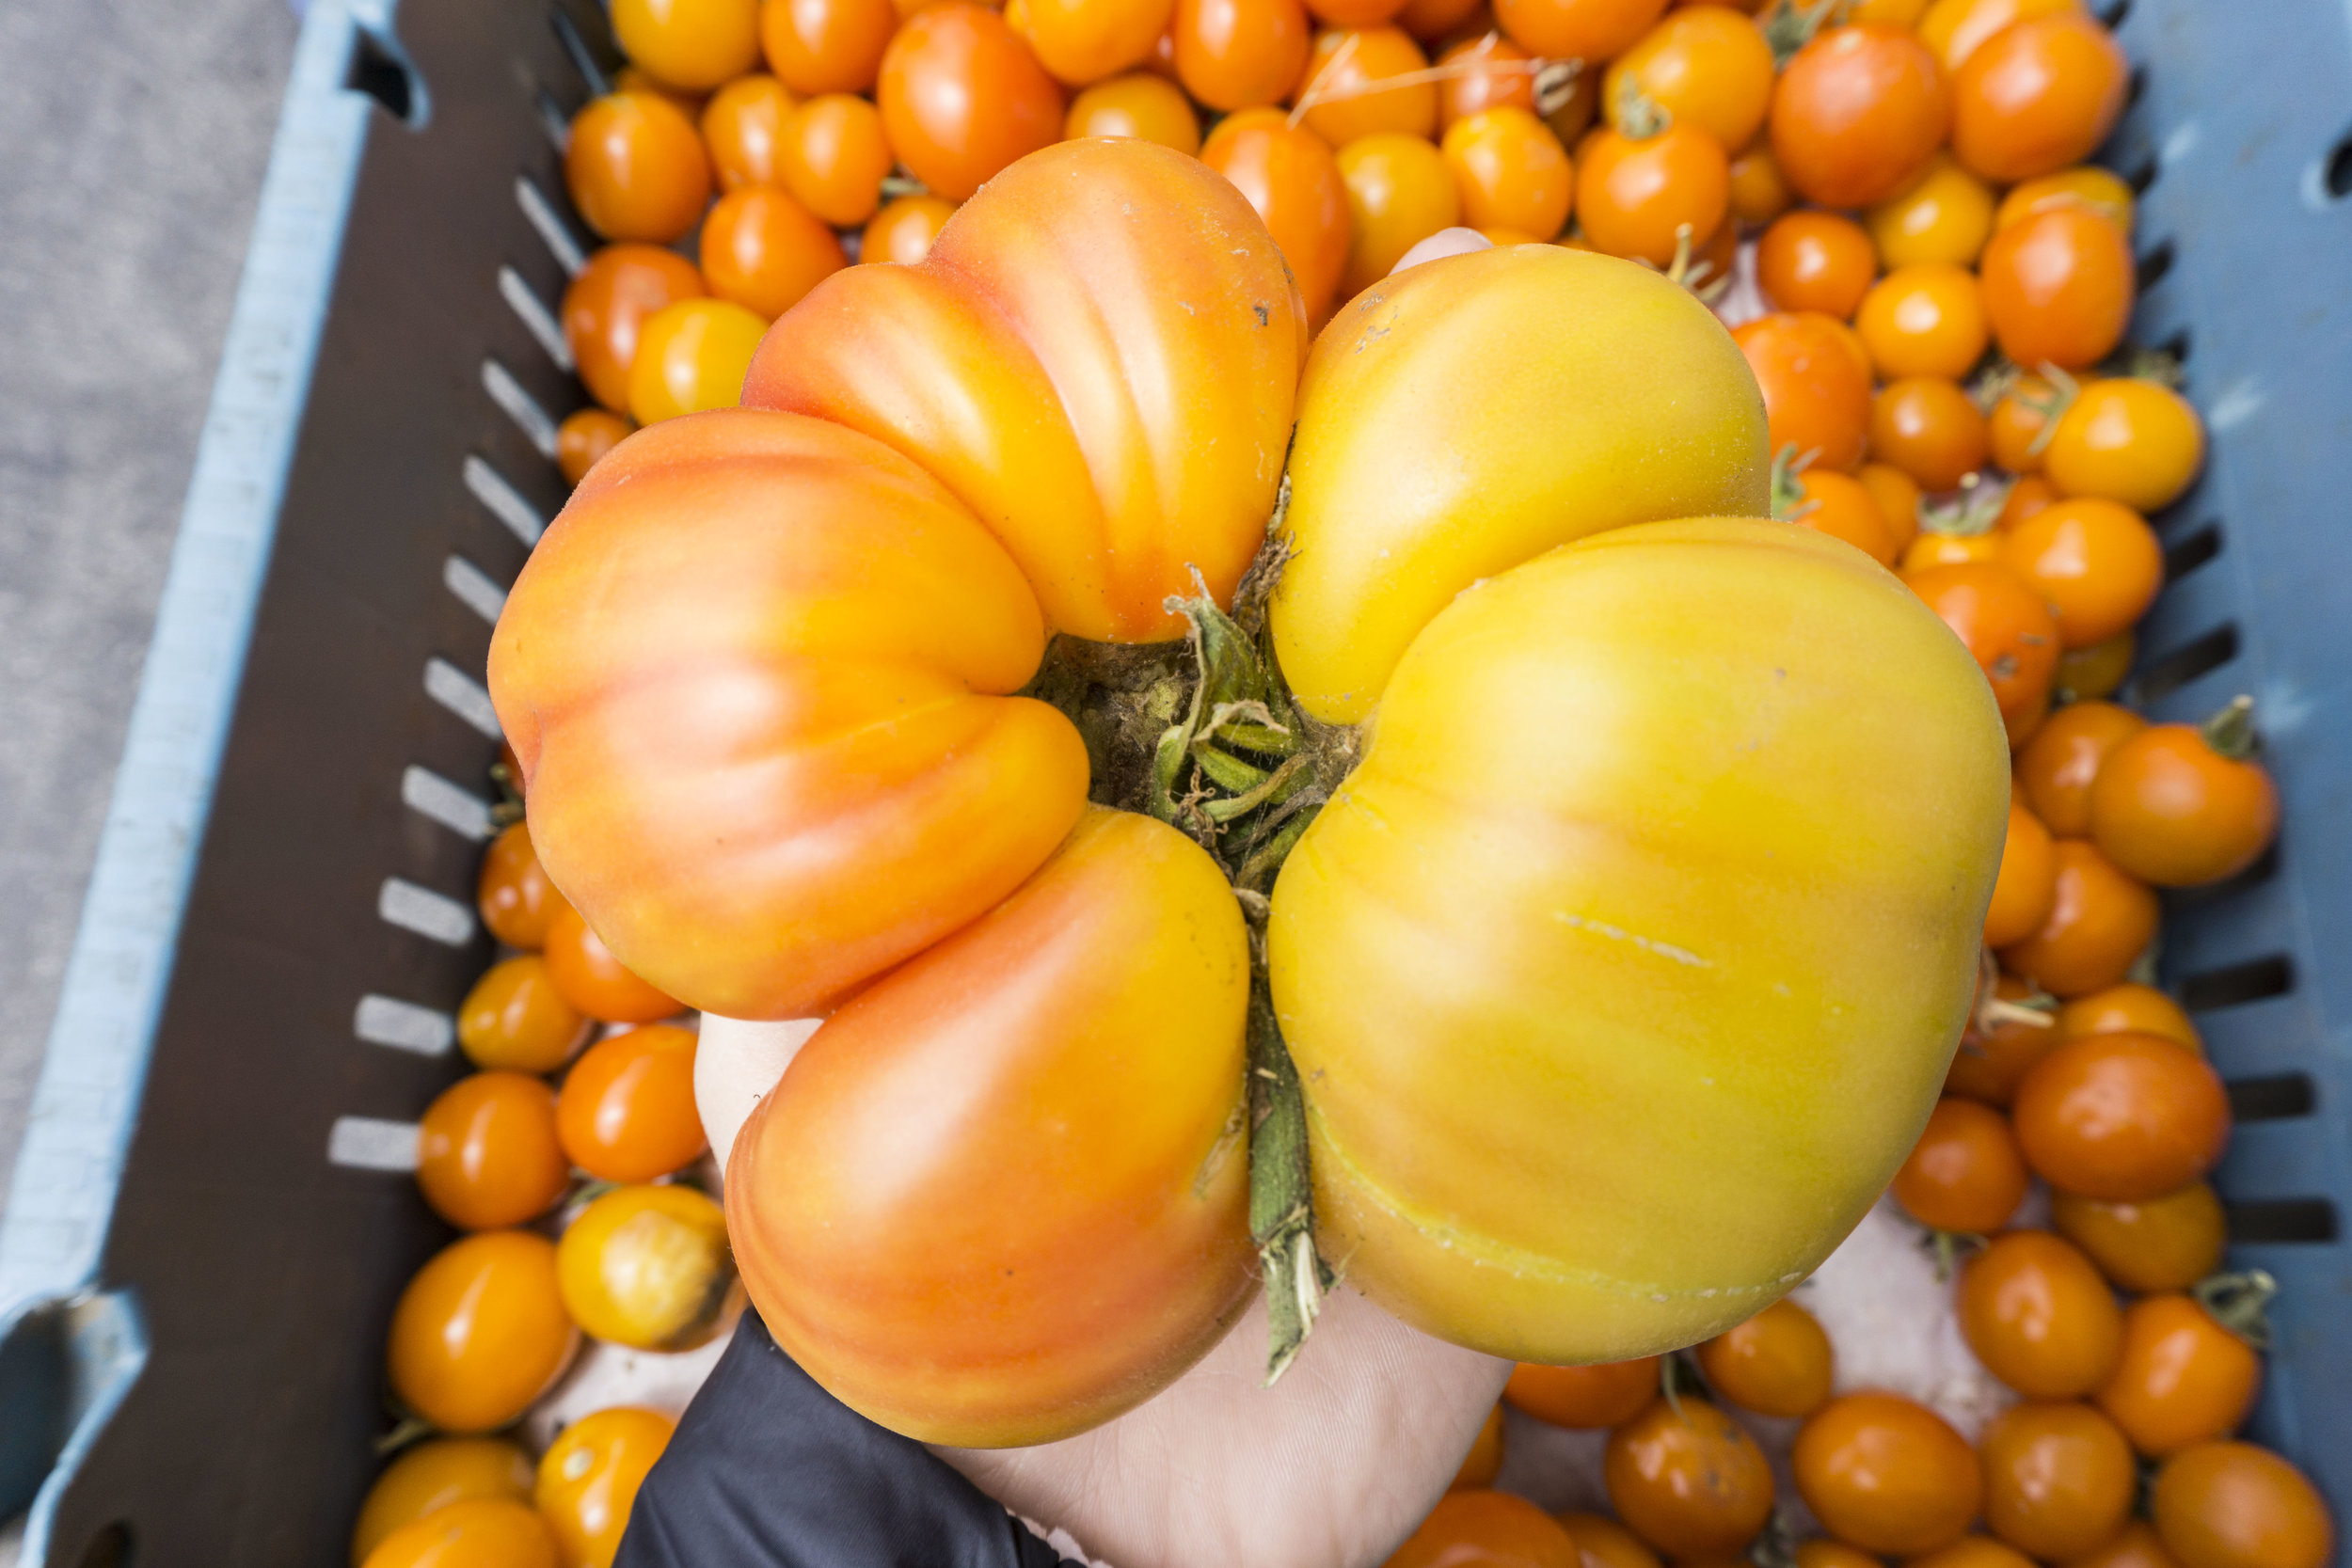 heirloom tomatoes farmers market finds